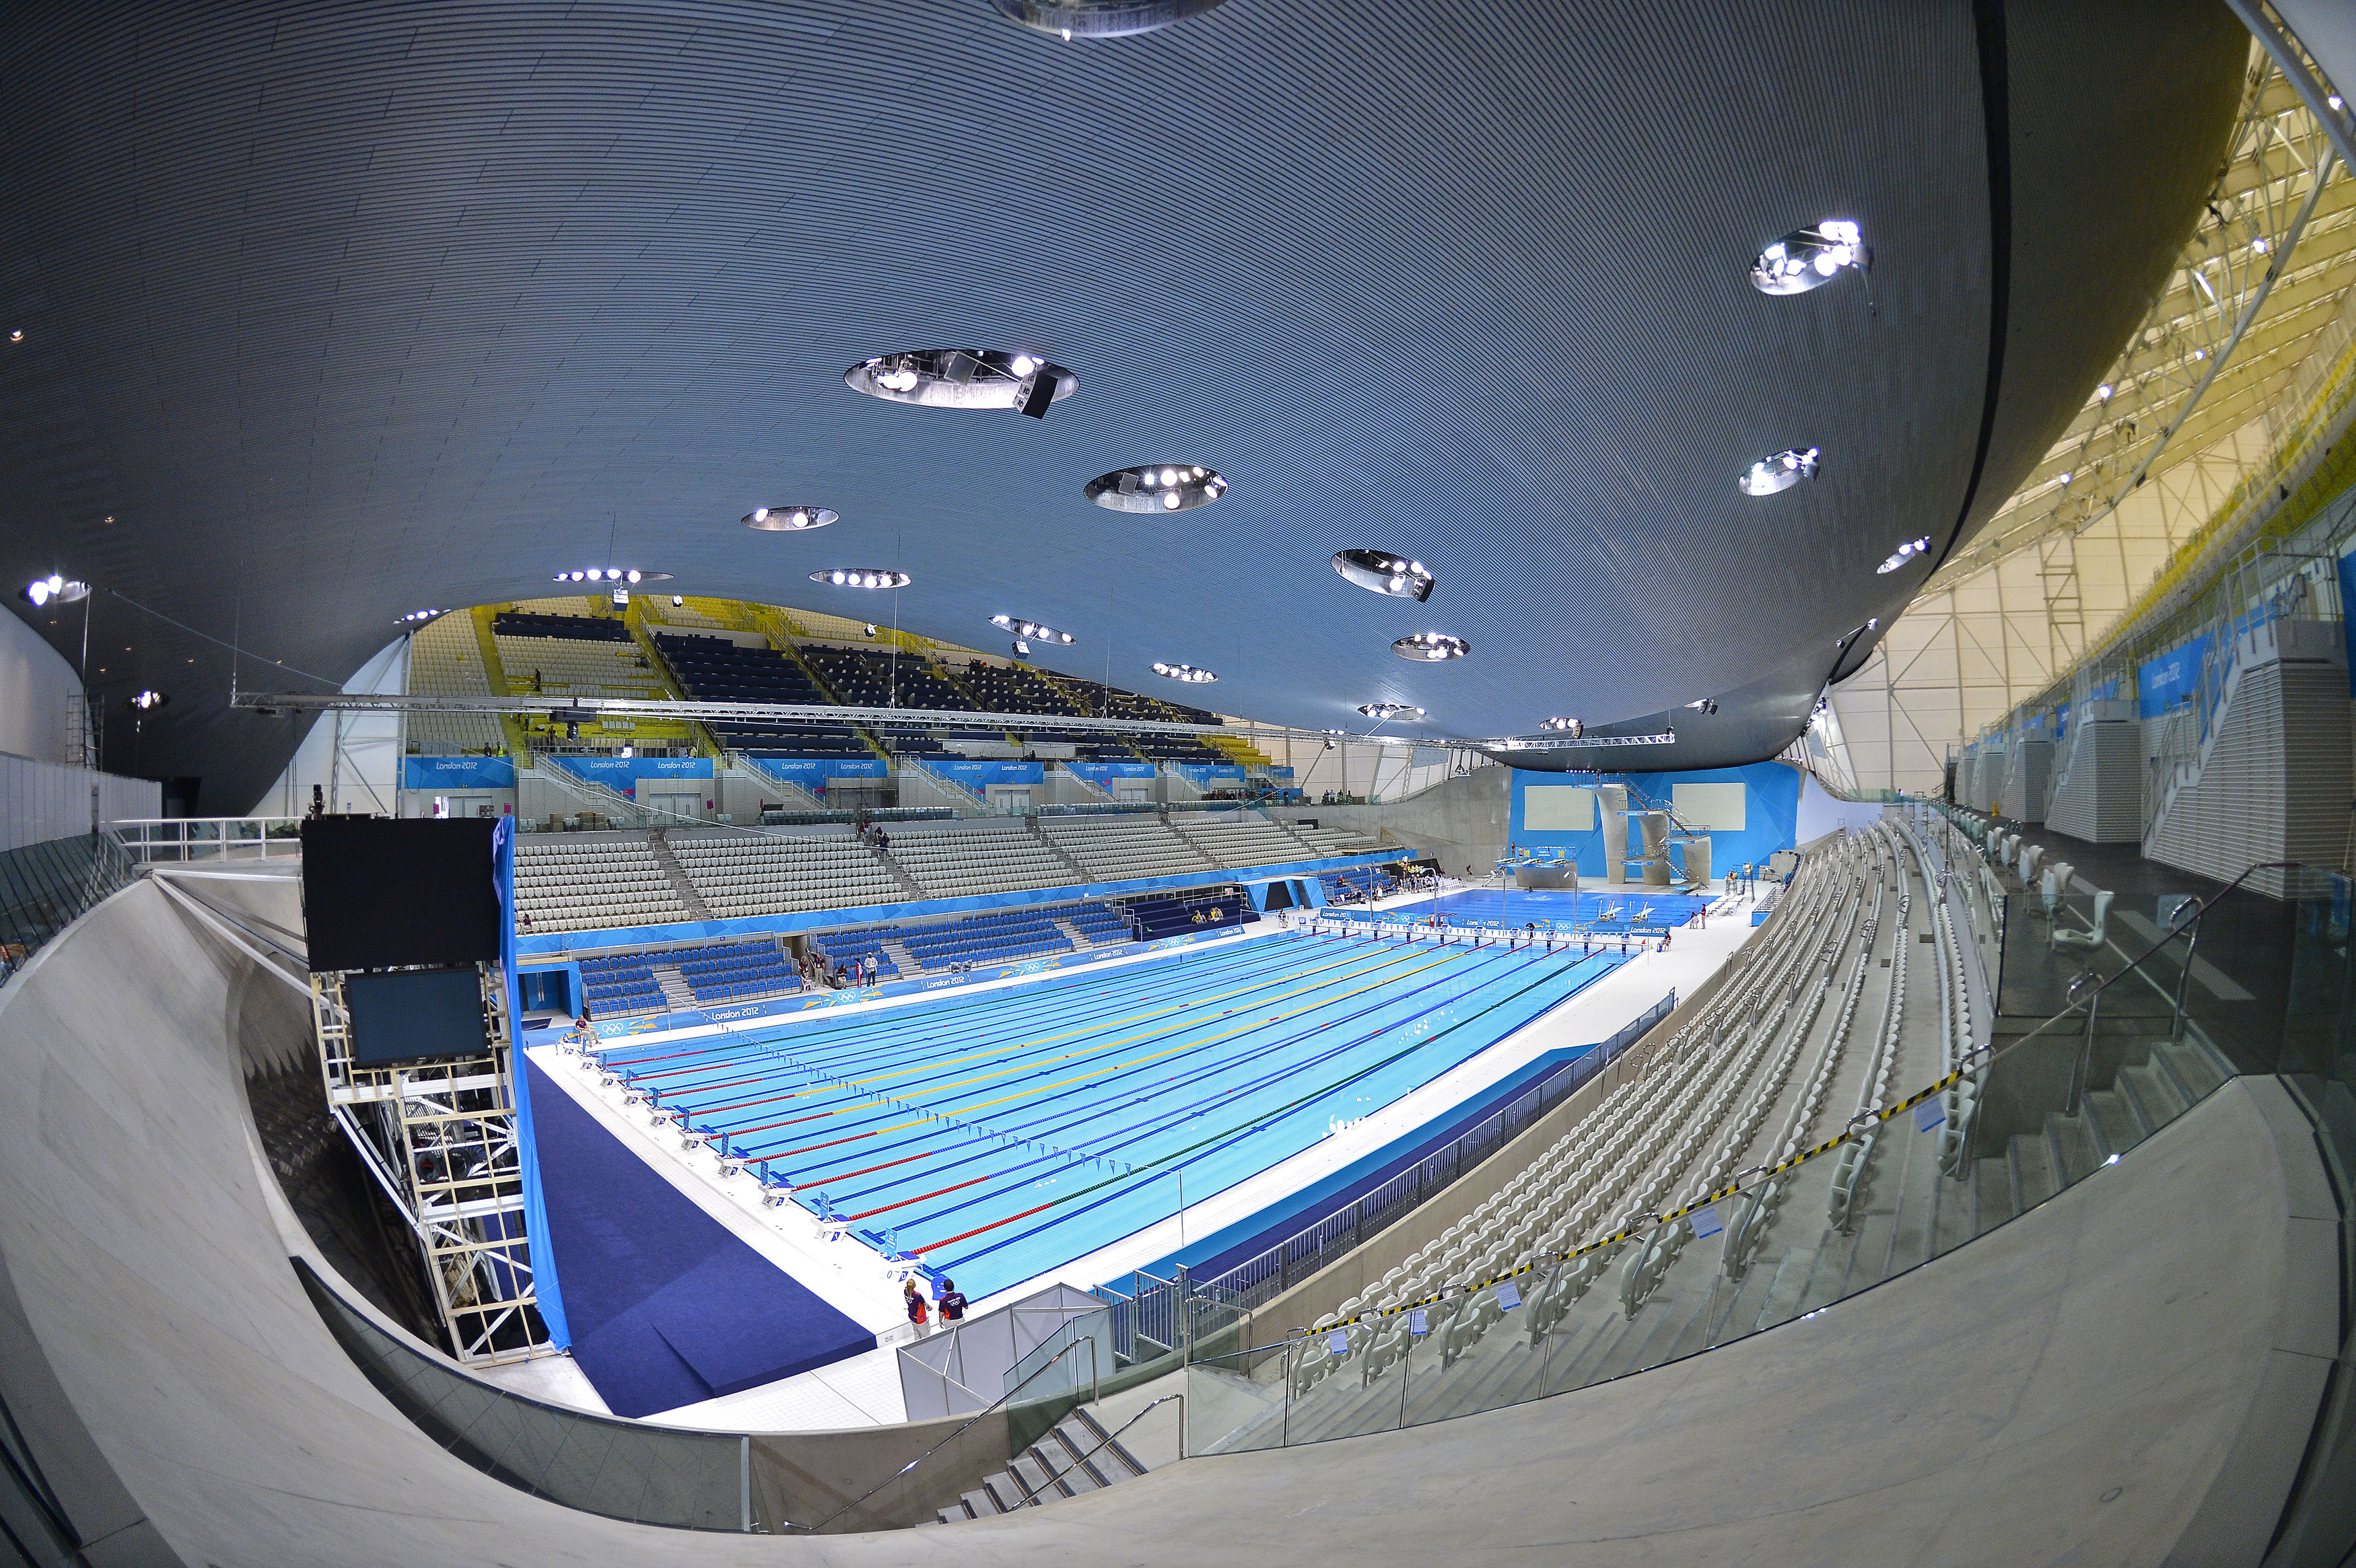 A general view is seen of the Aquatics Centre at the Olympic Park in Stratford, the location of the London 2012 Olympic Games, in east London July 19, 2012. REUTERS/Toby Melville (BRITAIN - Tags: SPORT SWIMMING OLYMPICS) - RTR3530A